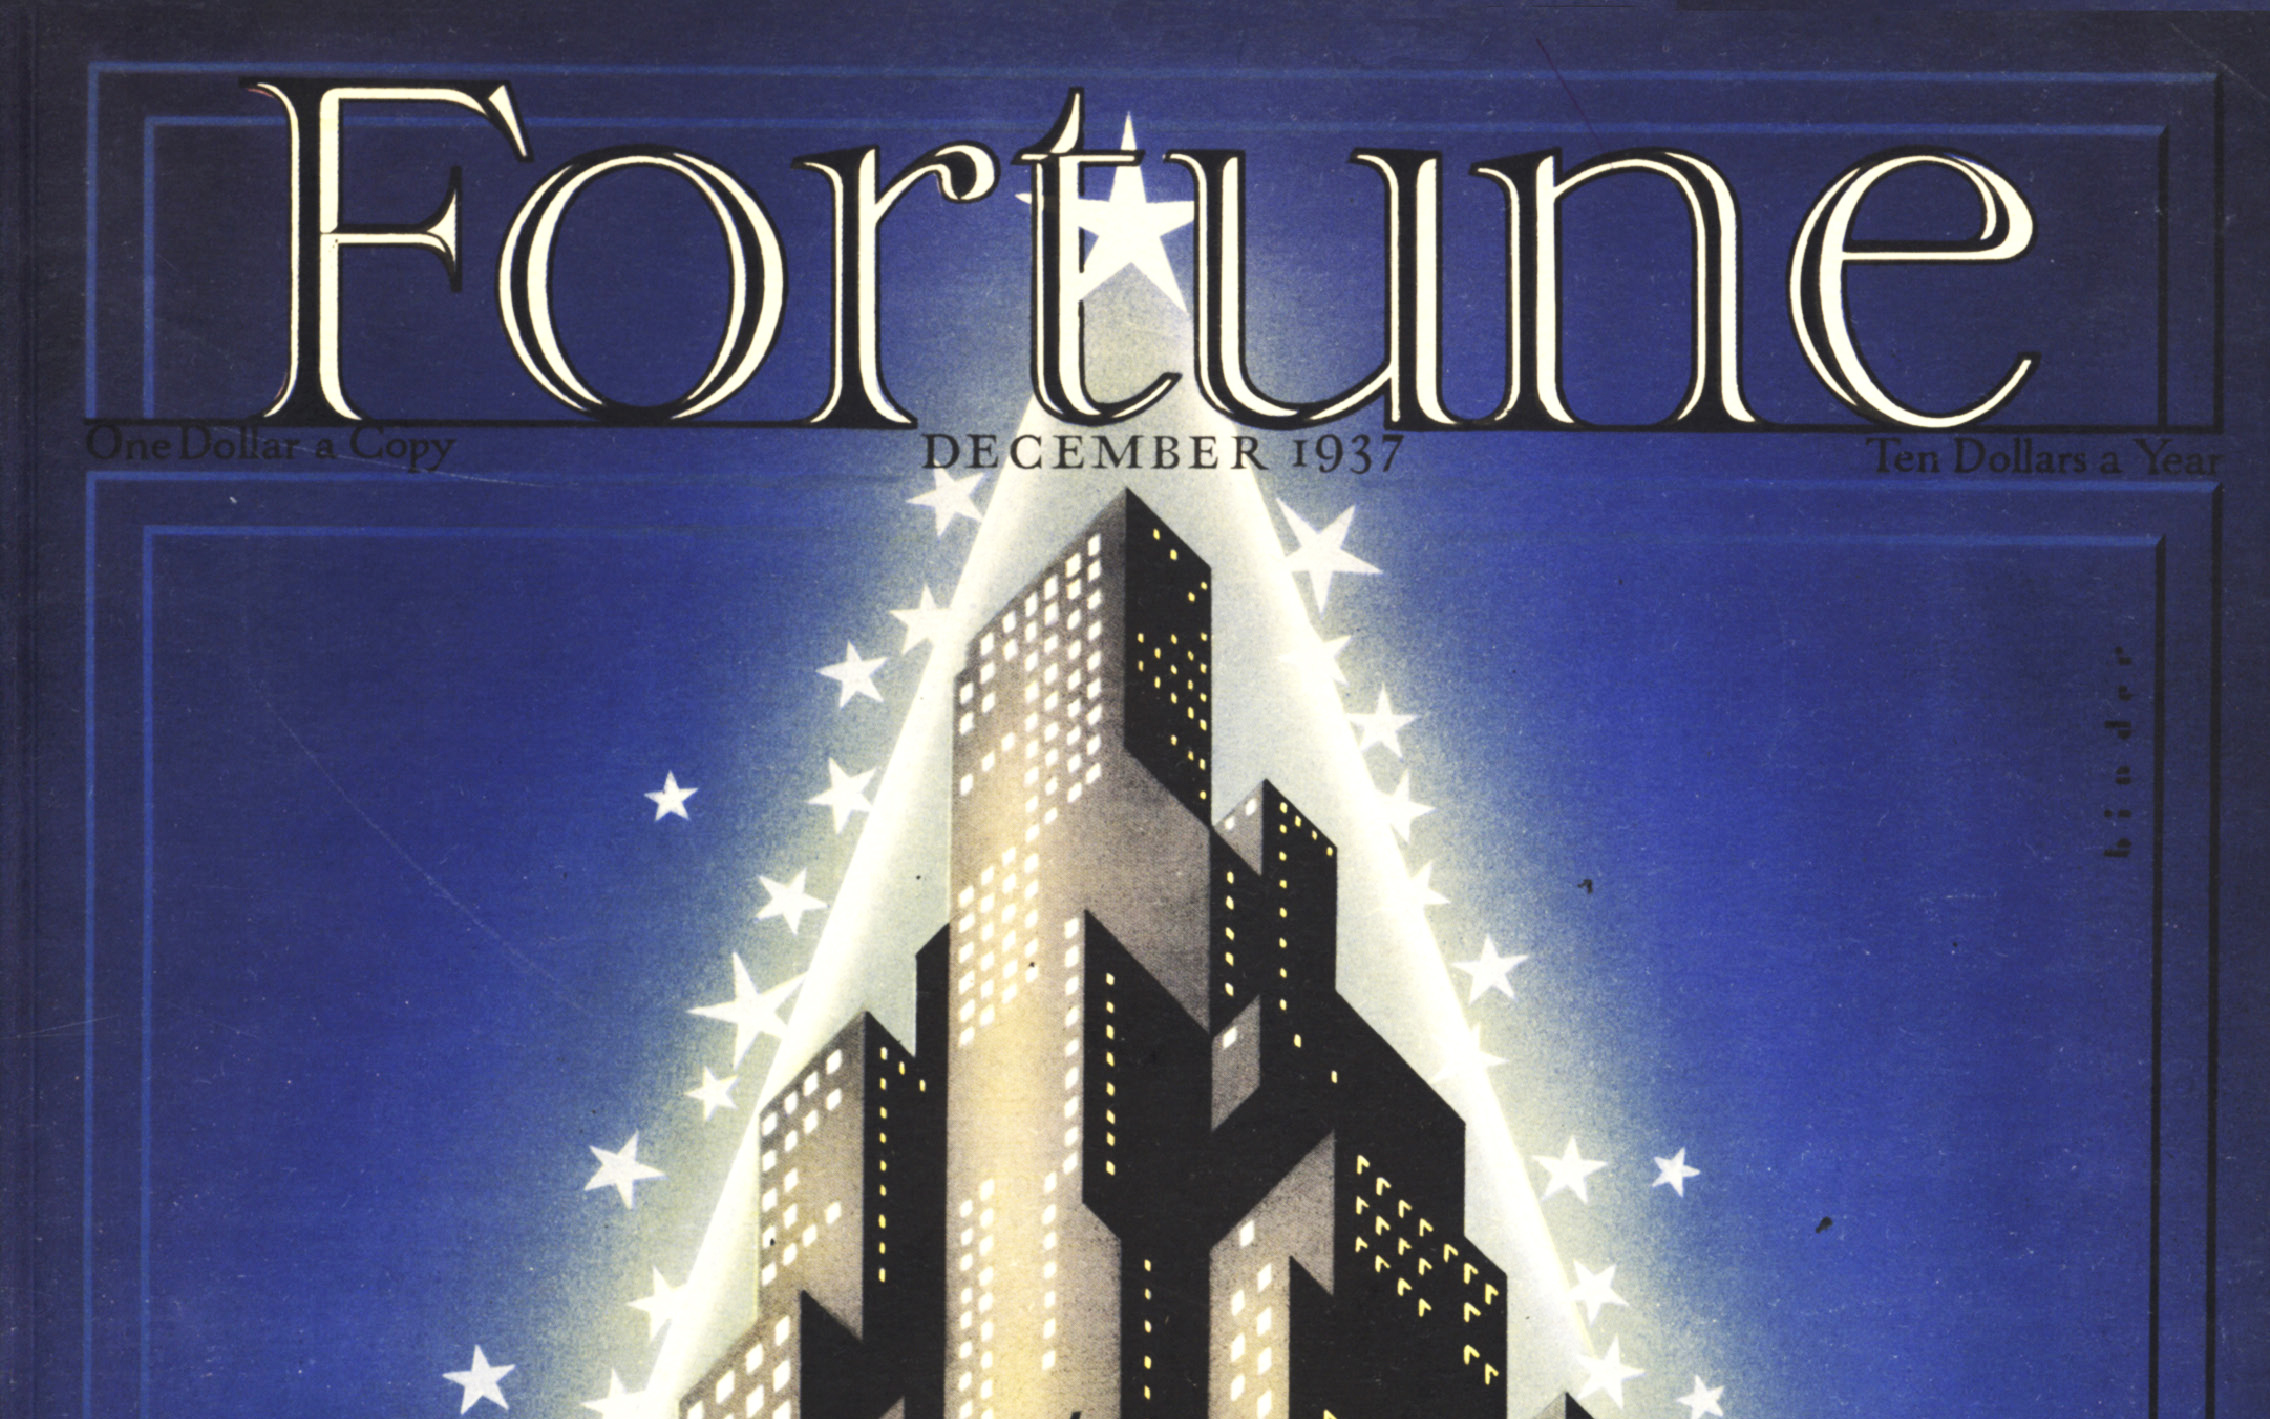 A portion of the cover of the Dec. 1937 issue of Fortune magazine.